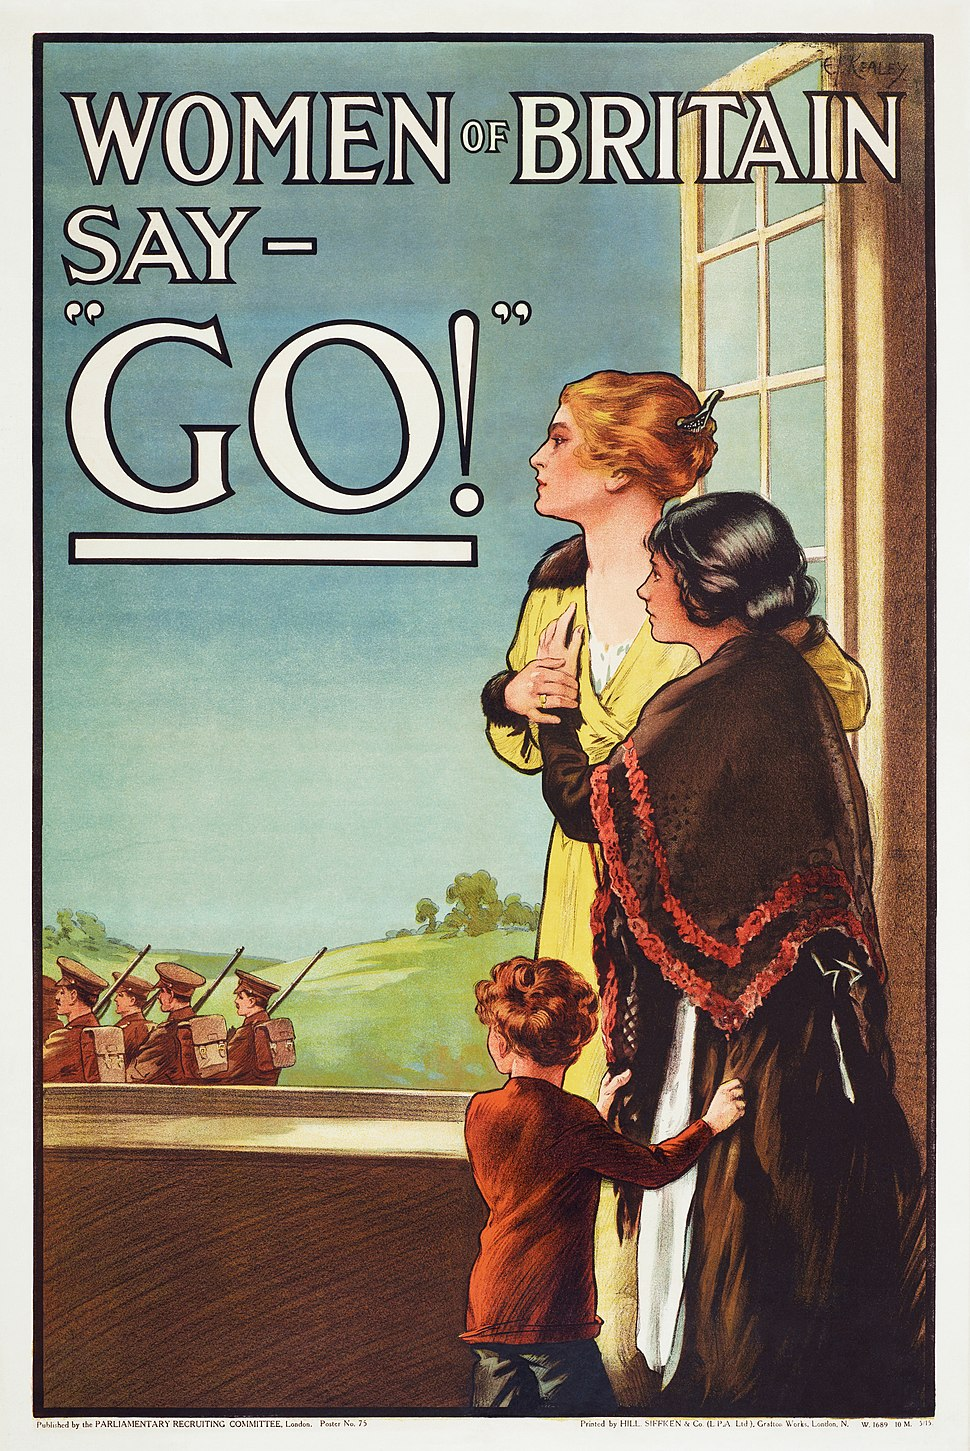 """Women of Britain Say - """"Go"""" - World War I British poster by the Parliamentary Recruiting Committee, art by E J Kealey (Restoration)"""